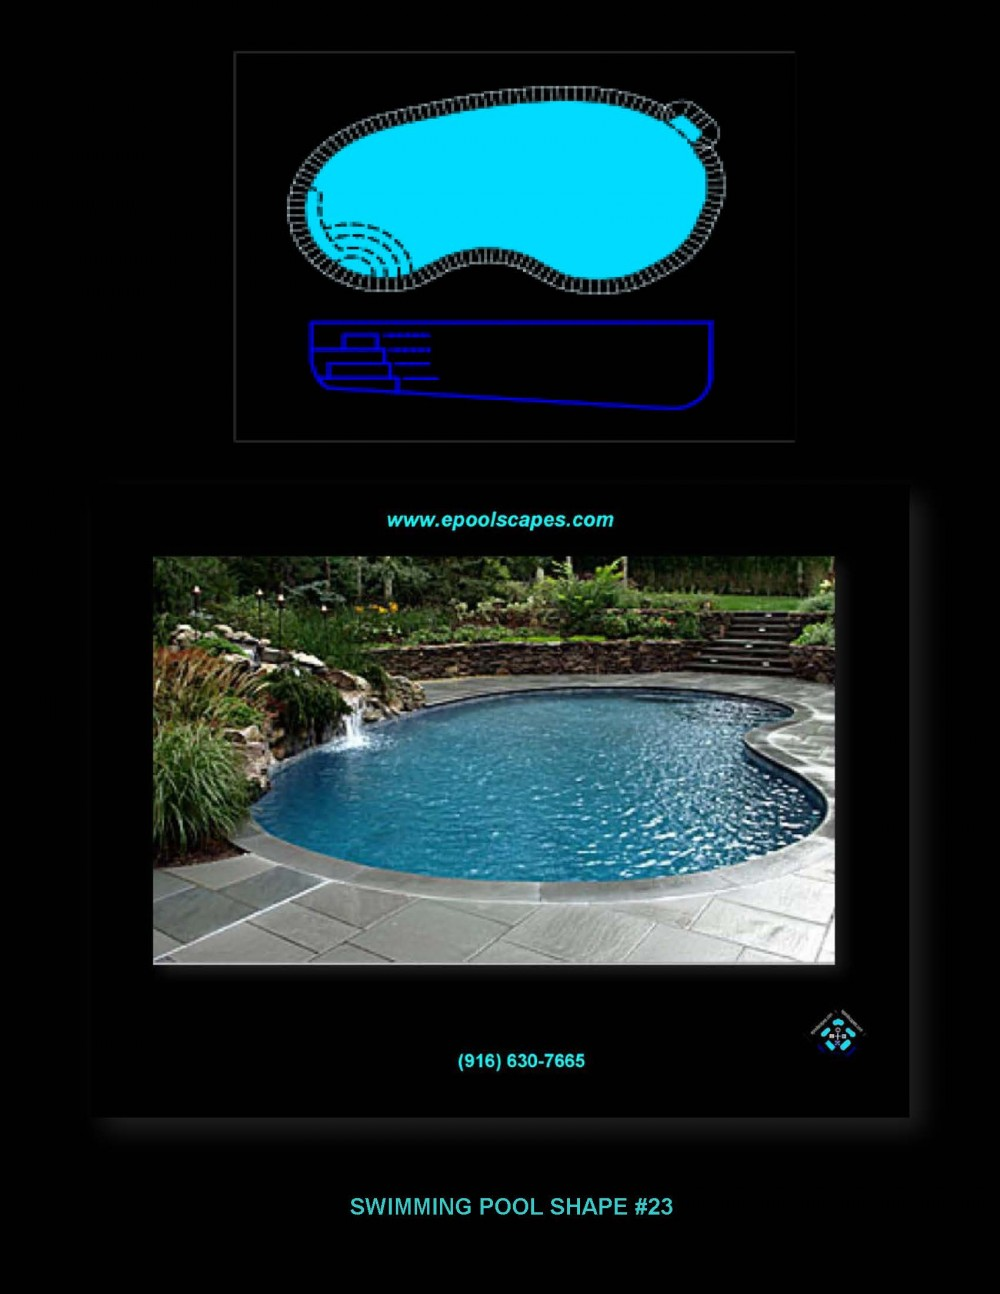 Pool Shape #23